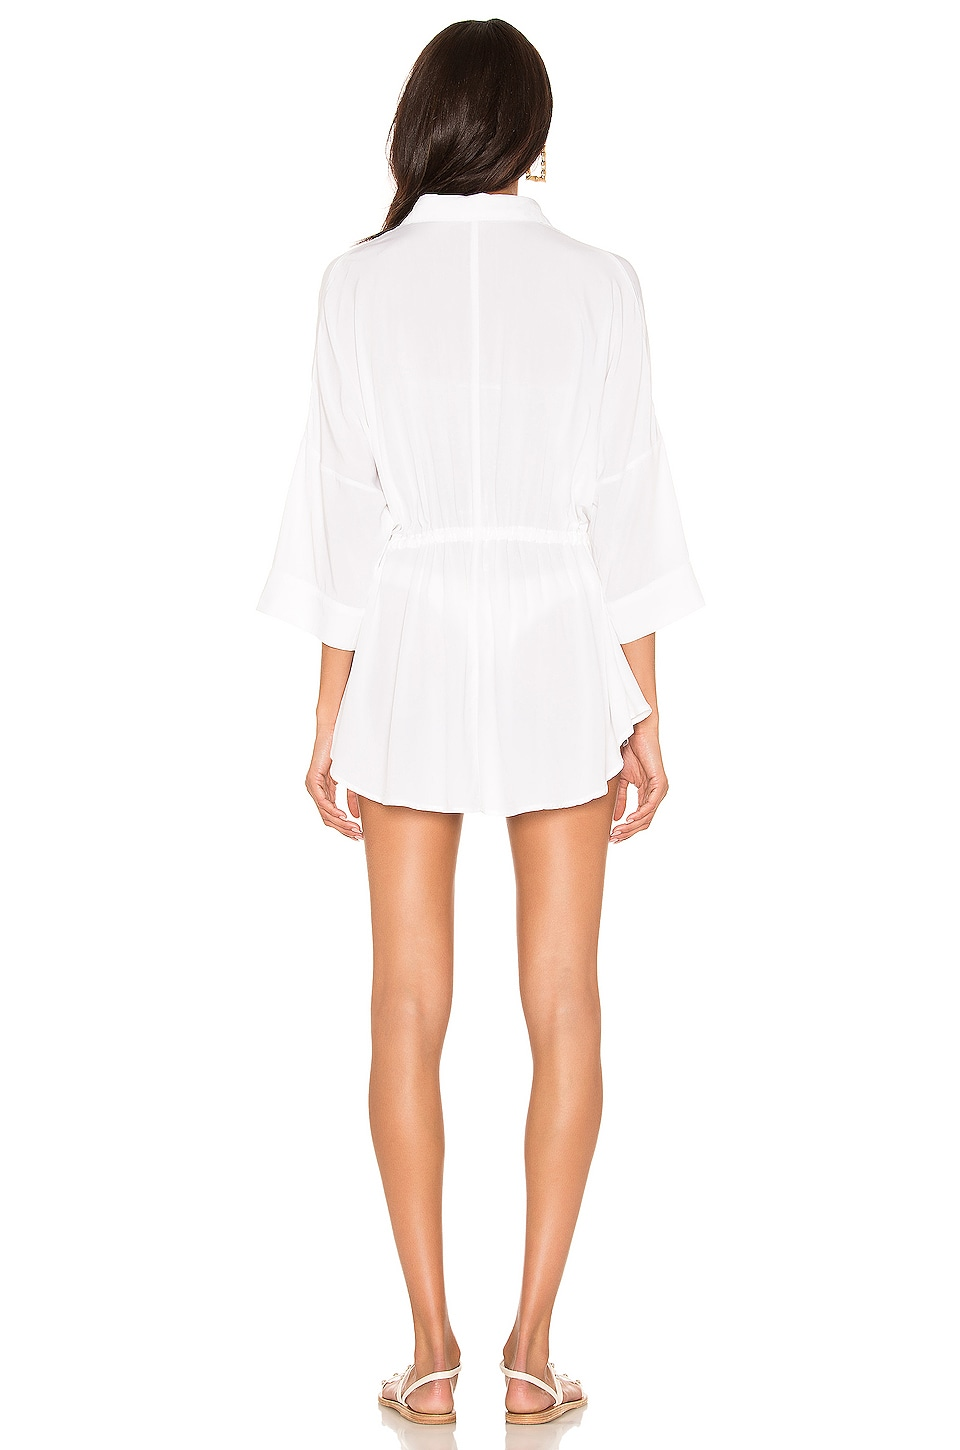 Pacifica Shirt Dress, view 4, click to view large image.